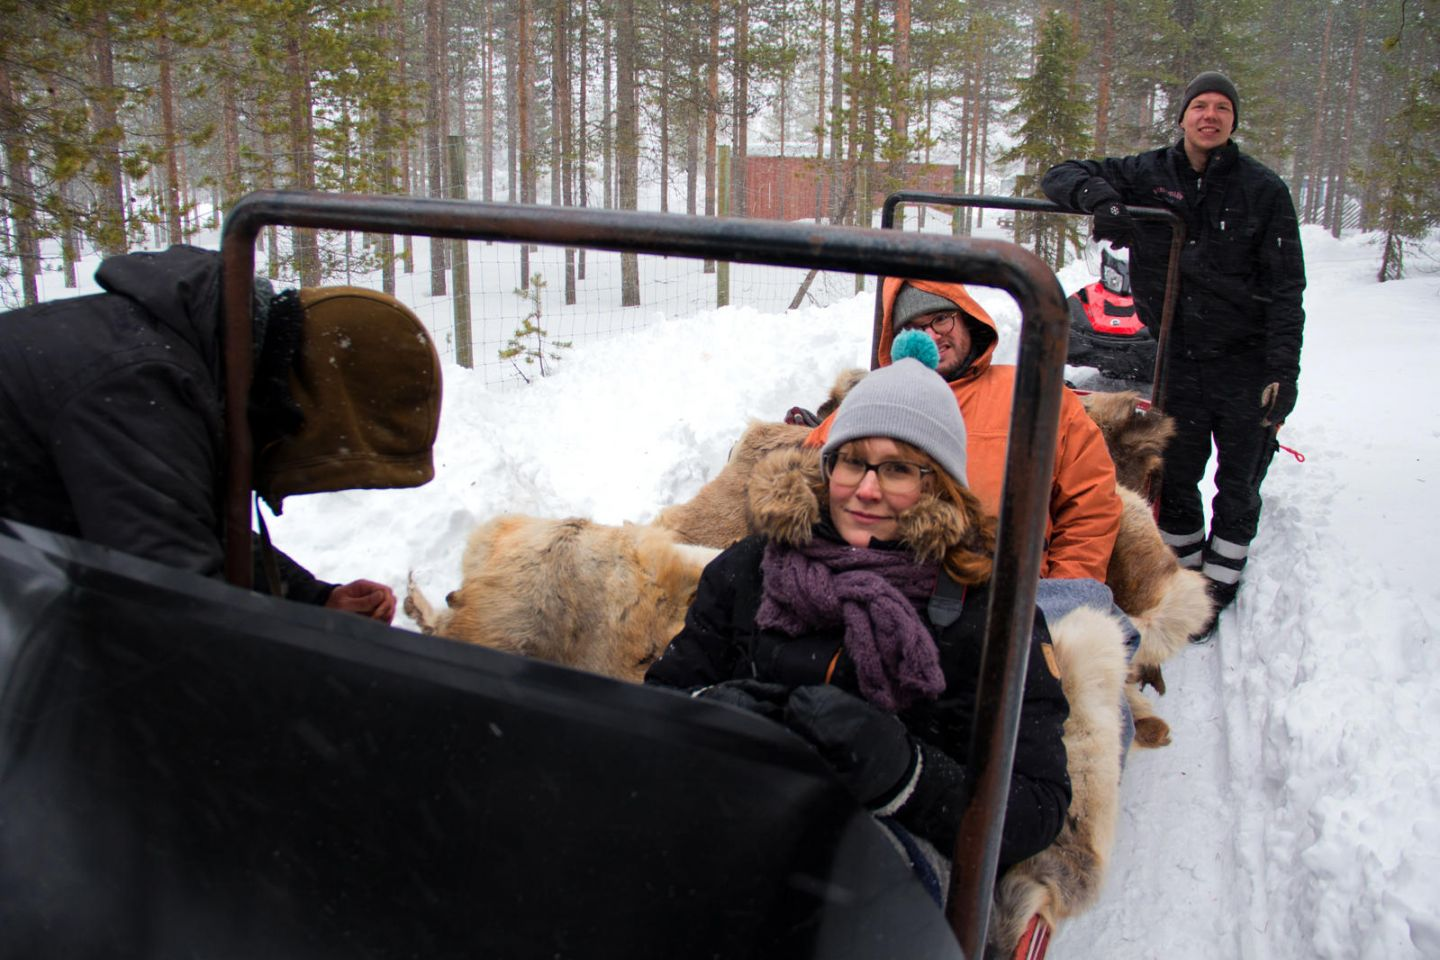 Filming a reindeer ride through the forest for French travel tv show